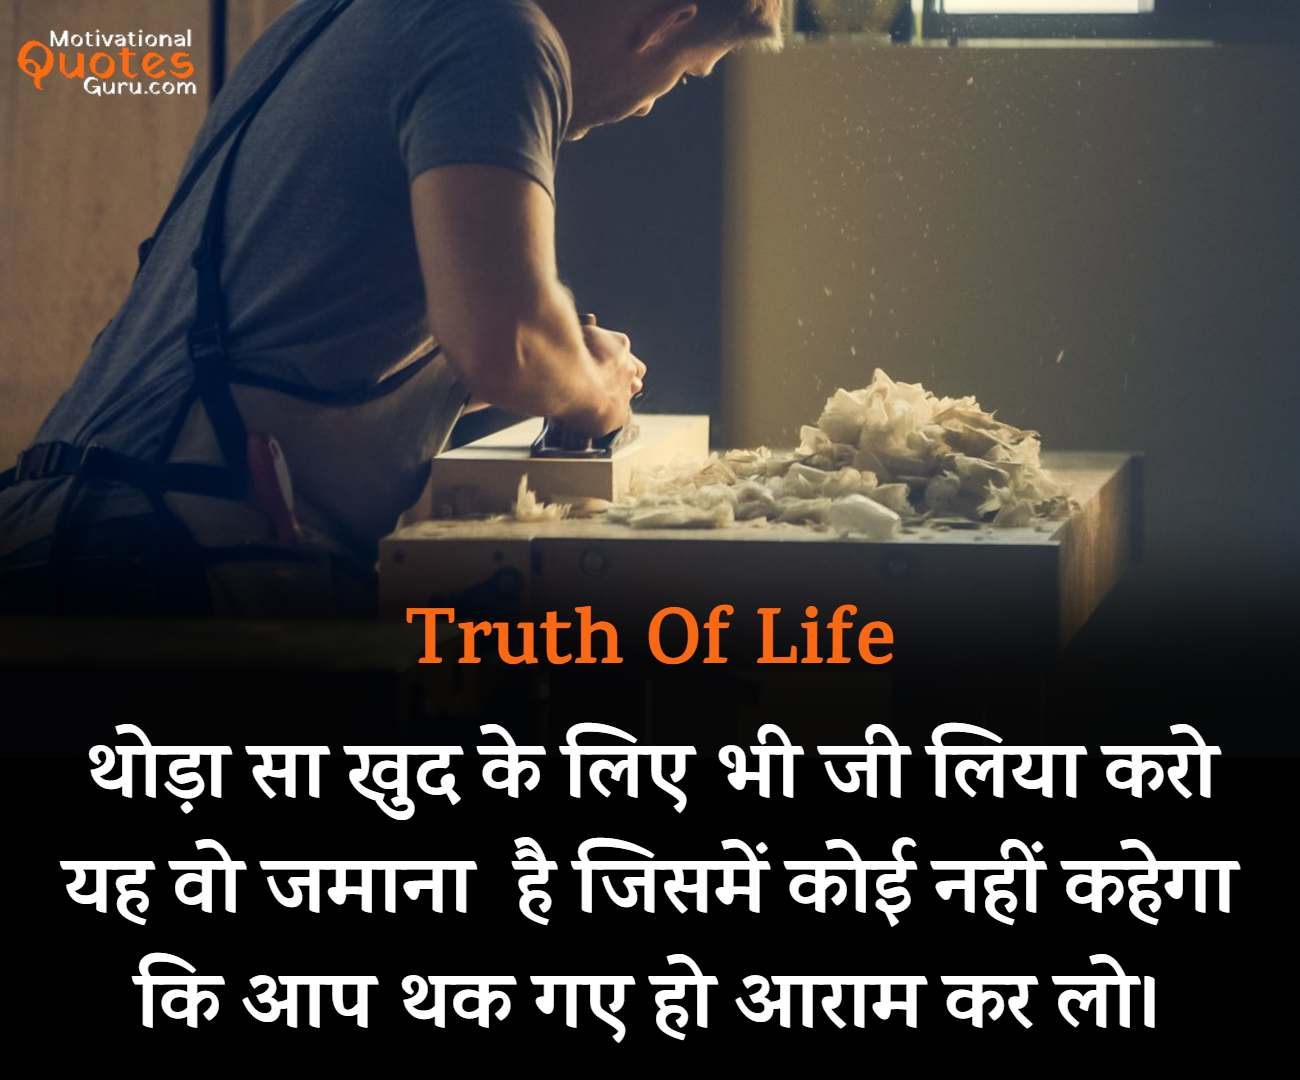 Truth of Life Quotes